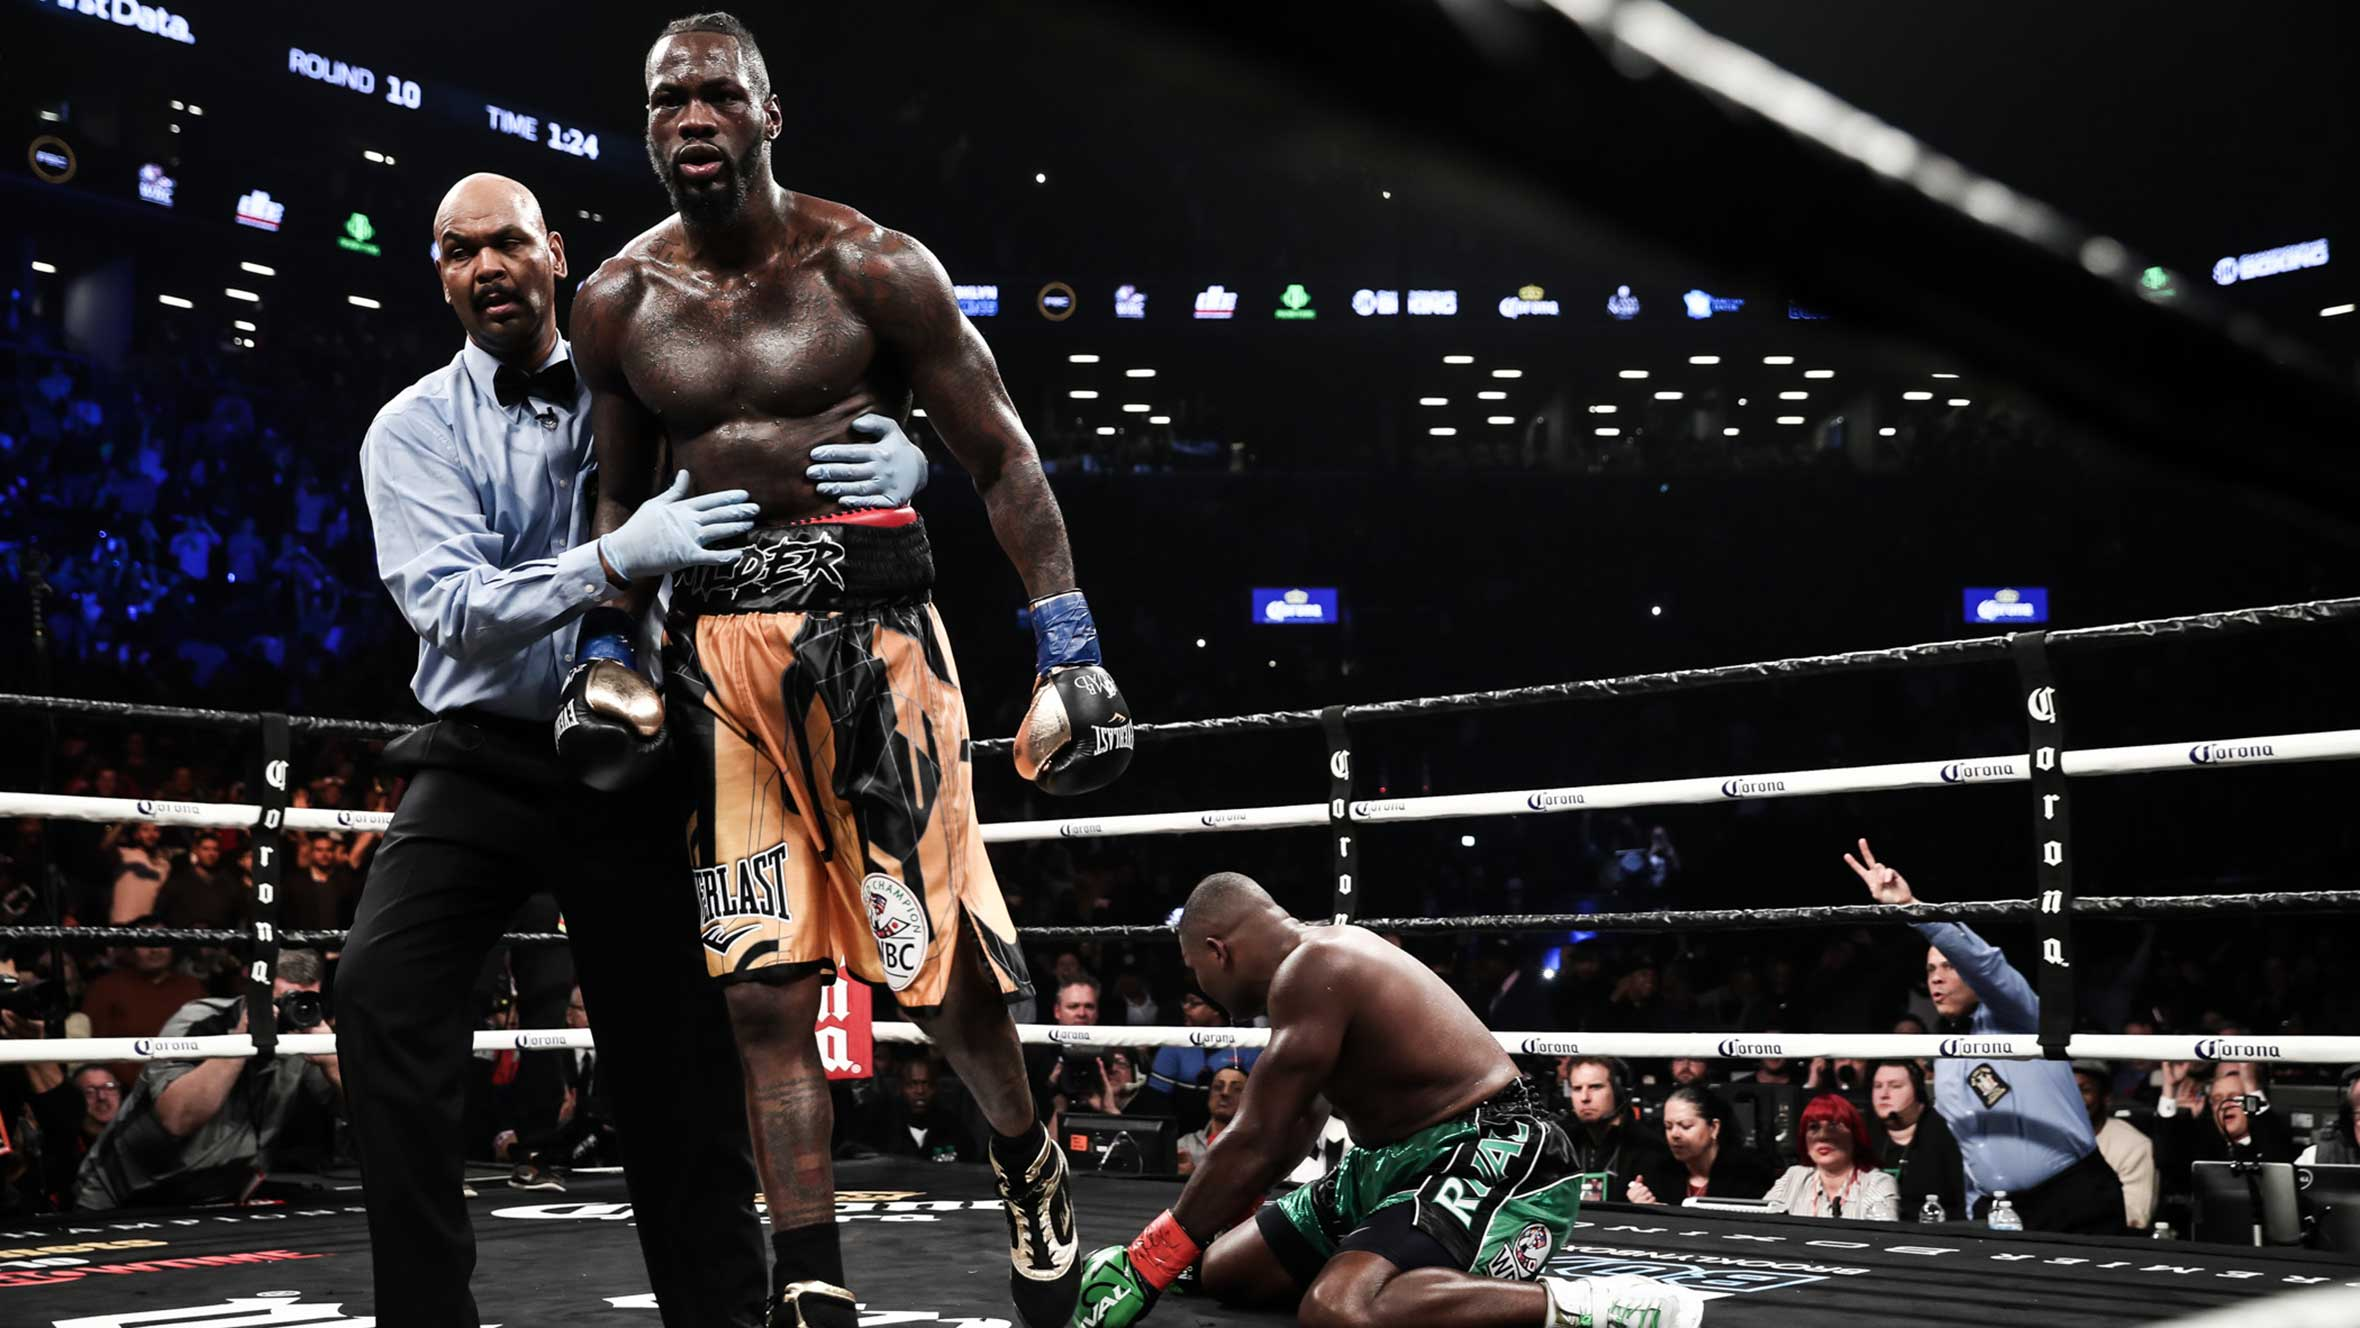 c5cc18972d8e Deontay Wilder puts on a show with an electric 10th-round TKO of Luis Ortiz